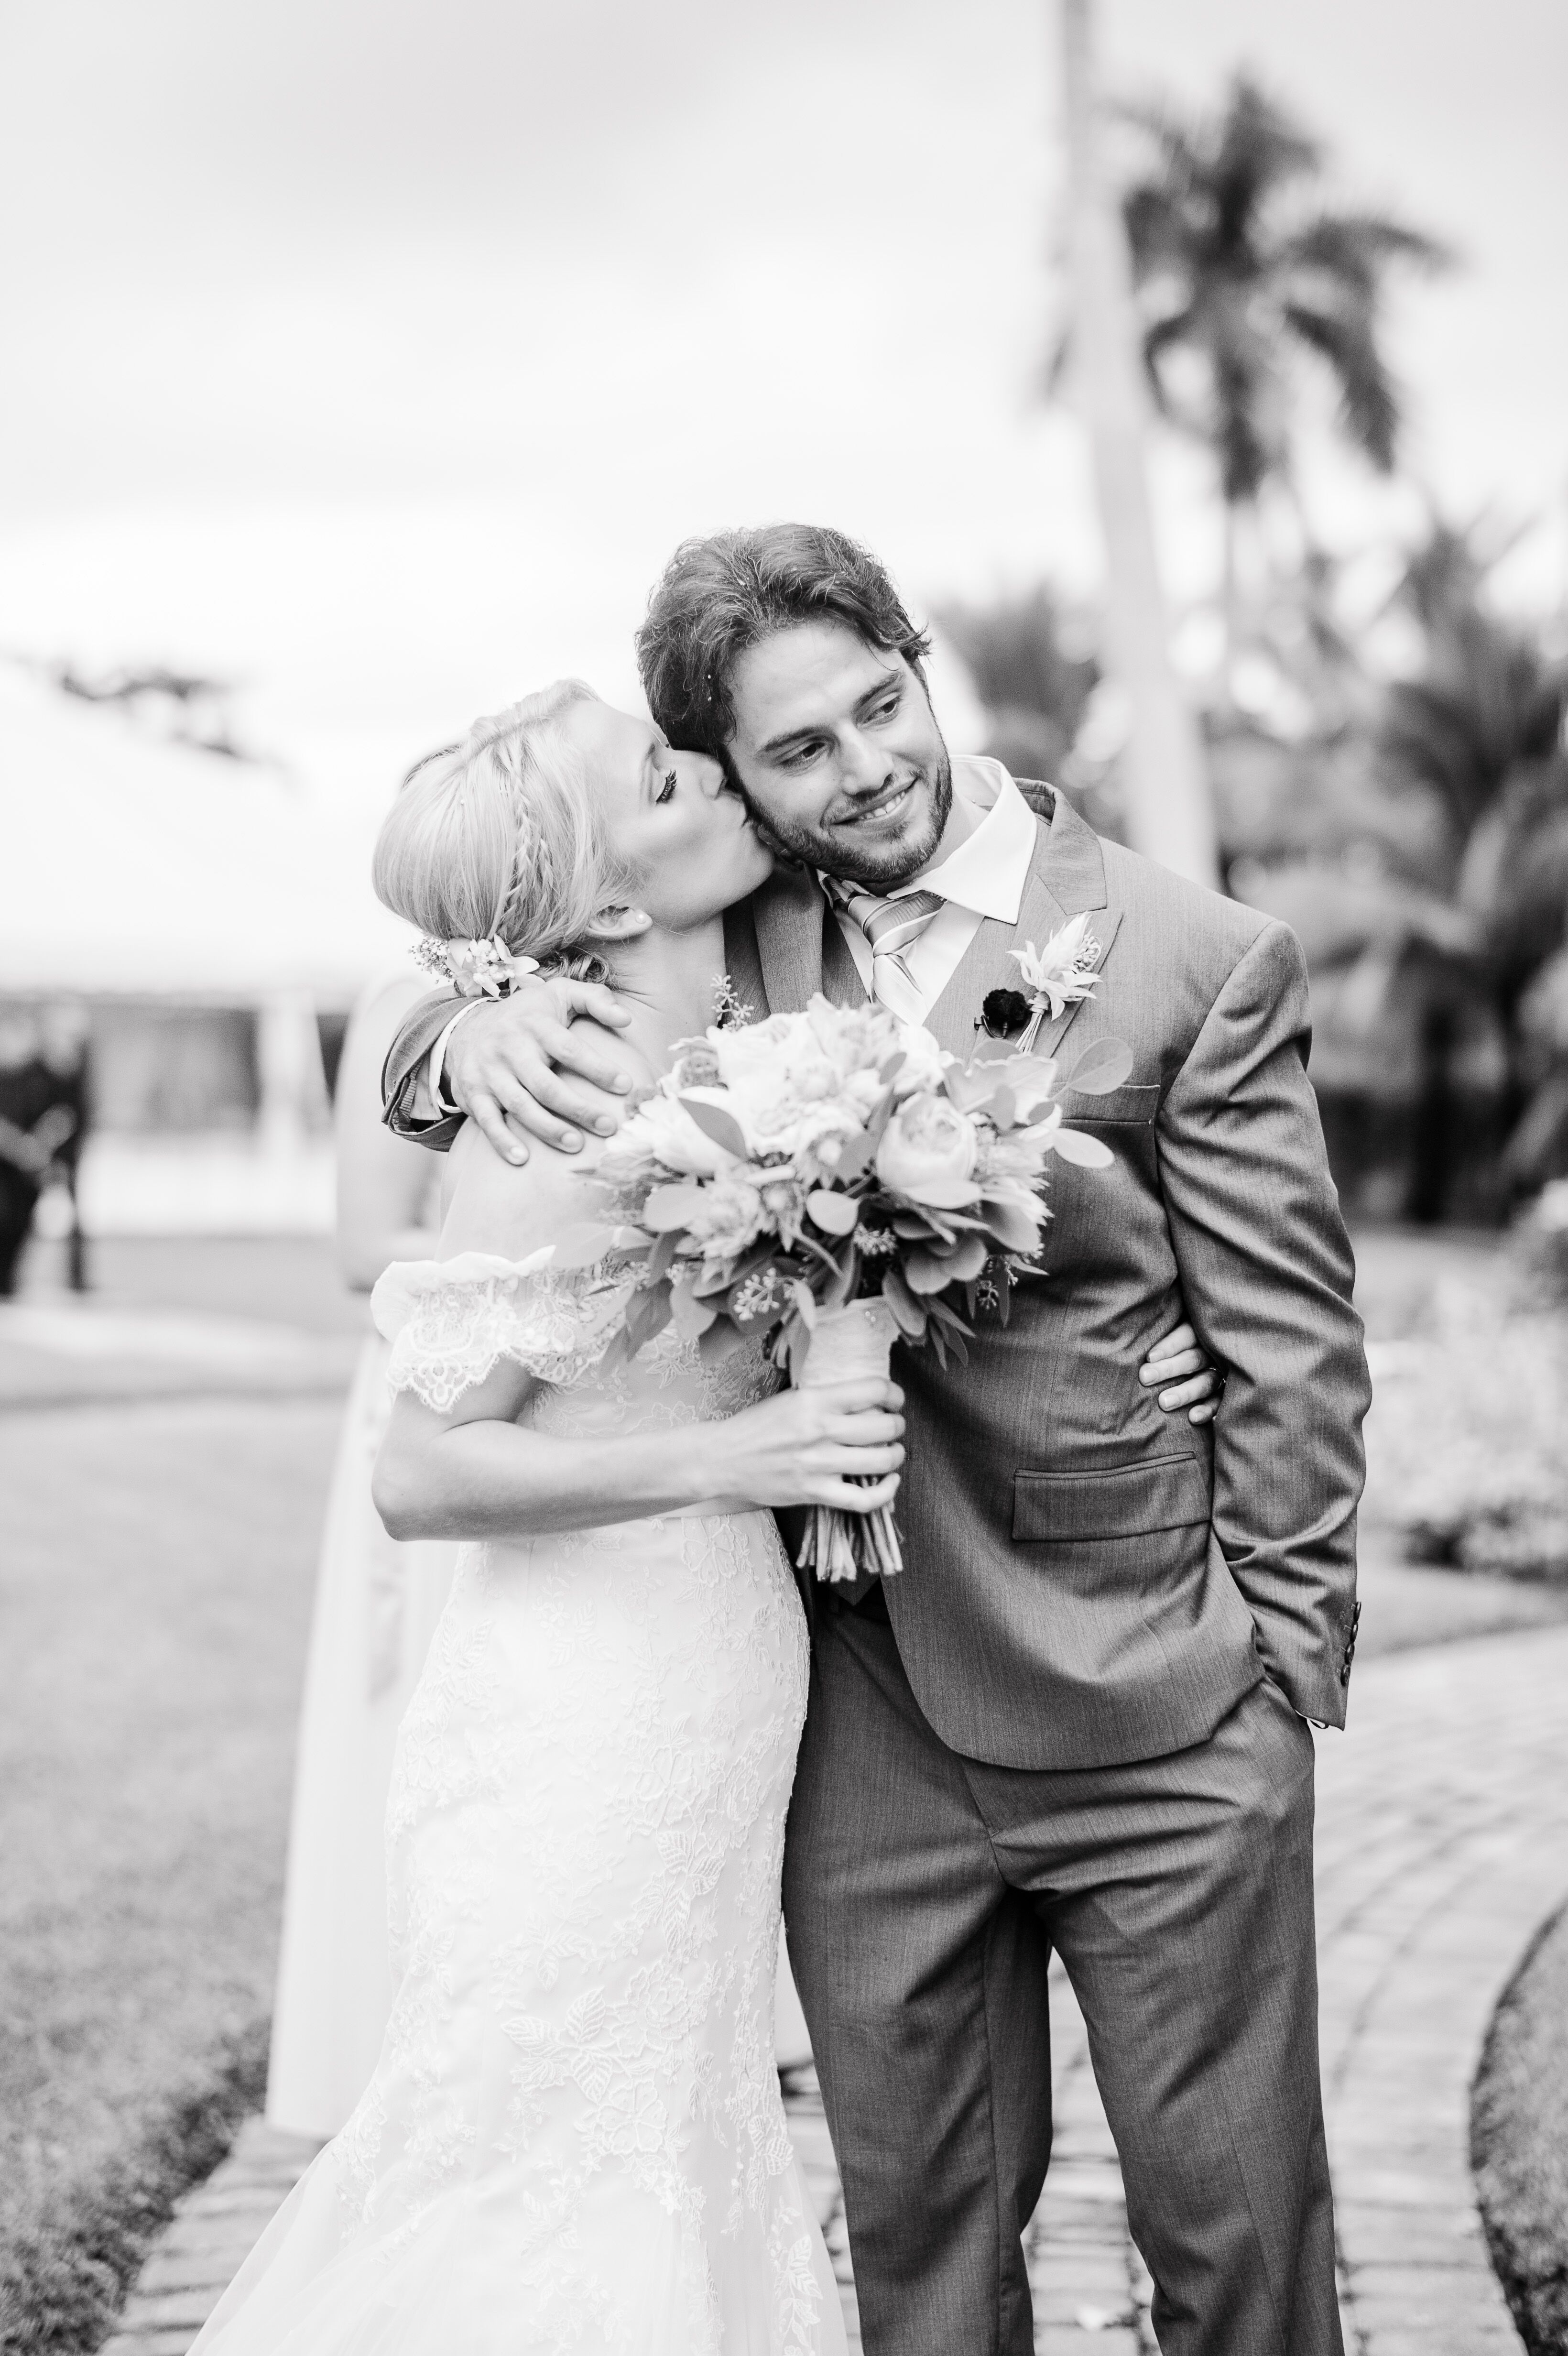 A Romantic Vintage Wedding At The White Orchid At Oasis In